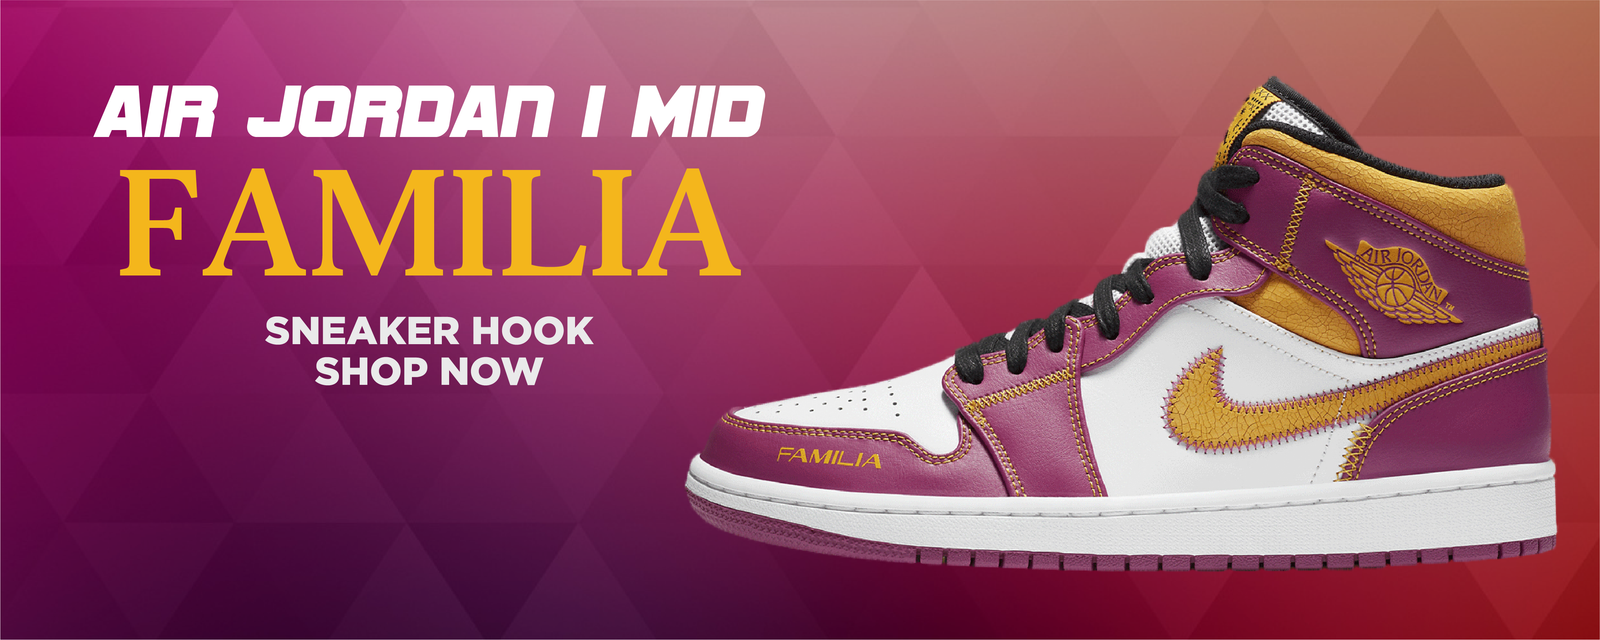 Air Jordan 1 Mid Familia Clothing to match Sneakers | Clothing to match Nike Air Jordan 1 Mid Familia Shoes